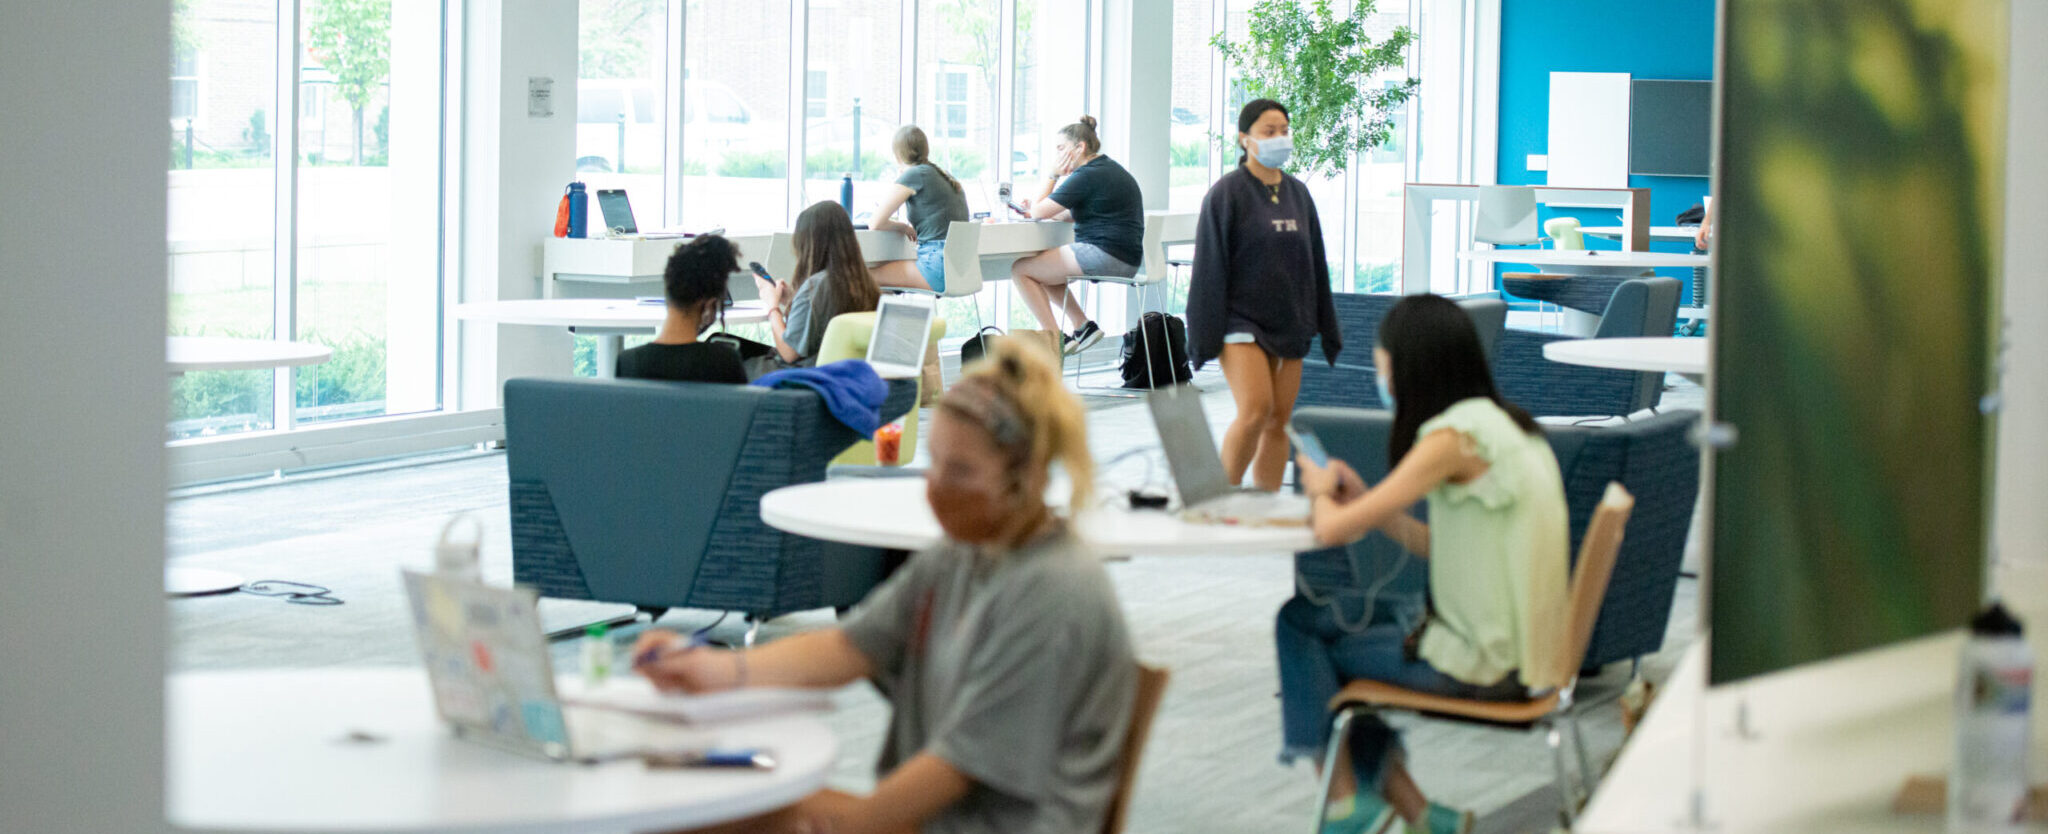 Students wearing masks in a study lounge